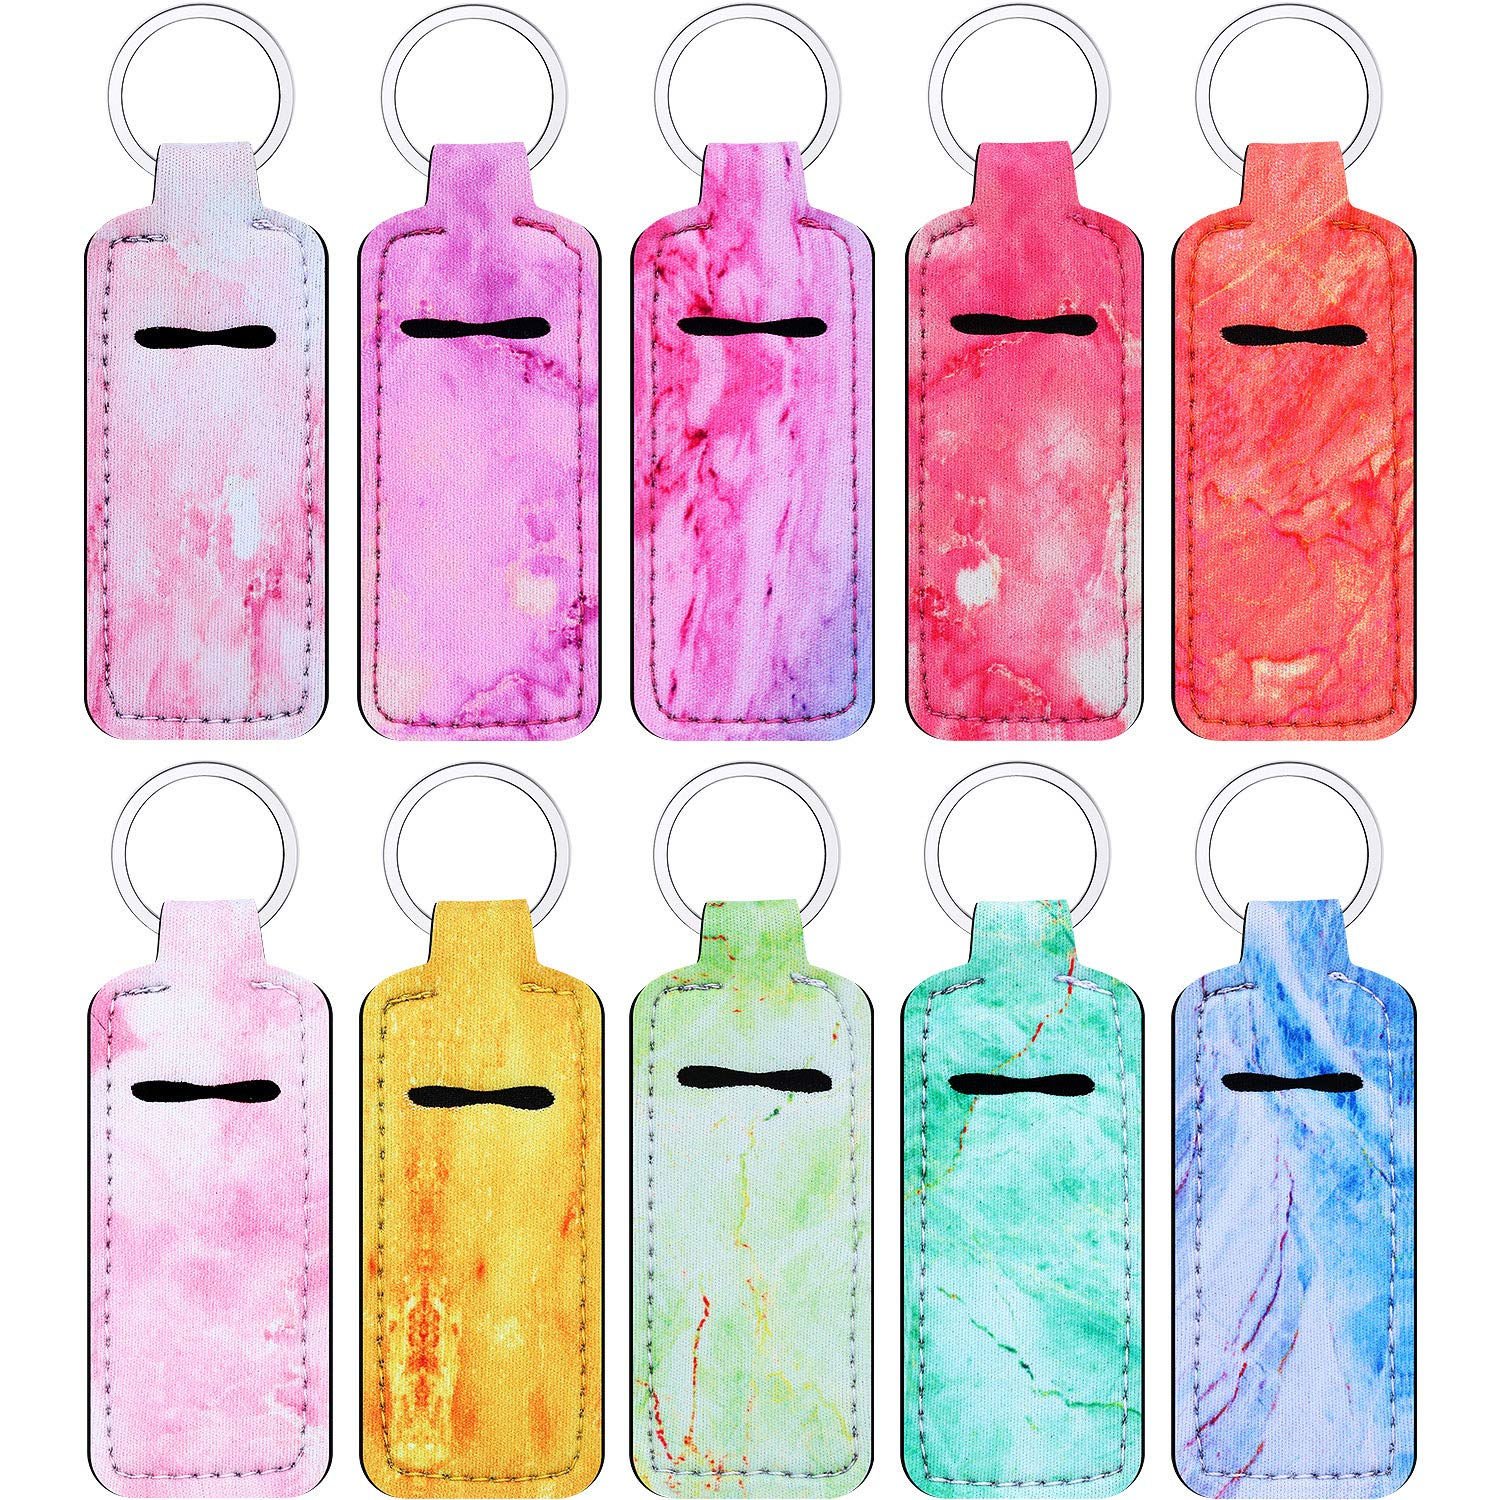 10 Pieces Chapstick Holder Keychains Clip-on Chapstick Sleeve Pouch Lipstick Holder Keychain Lip Balm Holder Key Chain with Marble Pattern for Travel Accessories, 10 Colors(Rectangle Style)